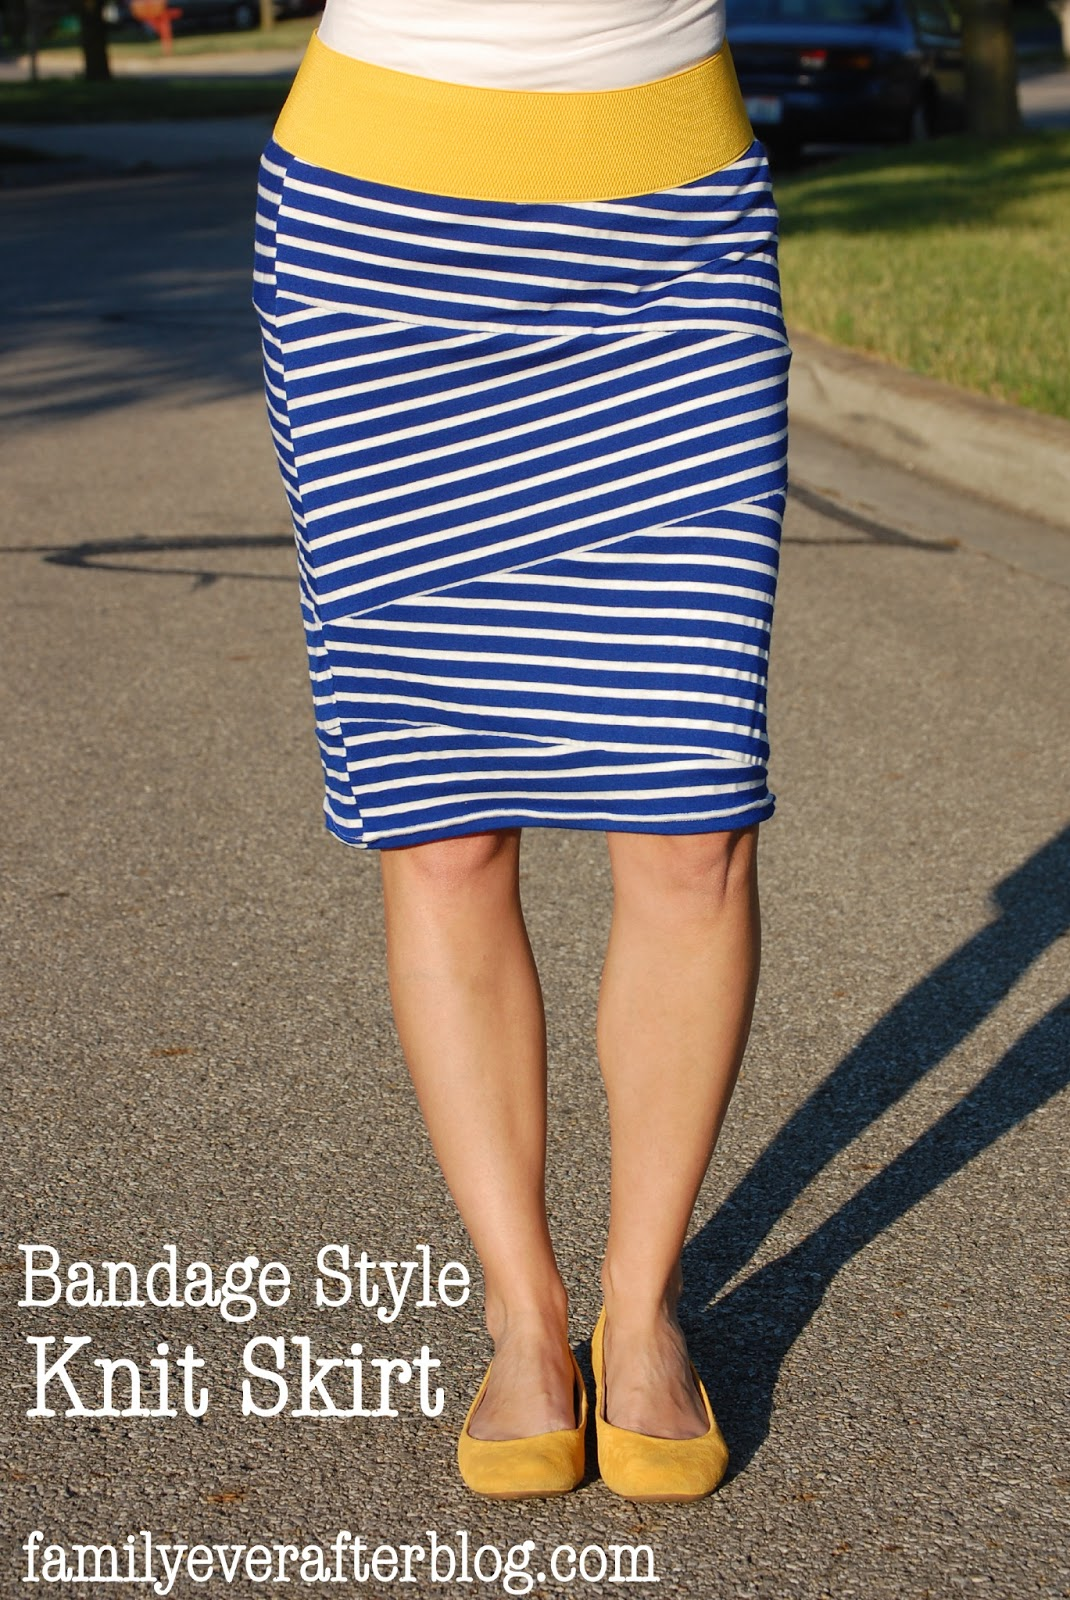 How To Knit A Skirt Pattern Free : Girl Charlee Fabrics: Tutorial Tuesday:: Bandage Style Knit Skirt by Family E...